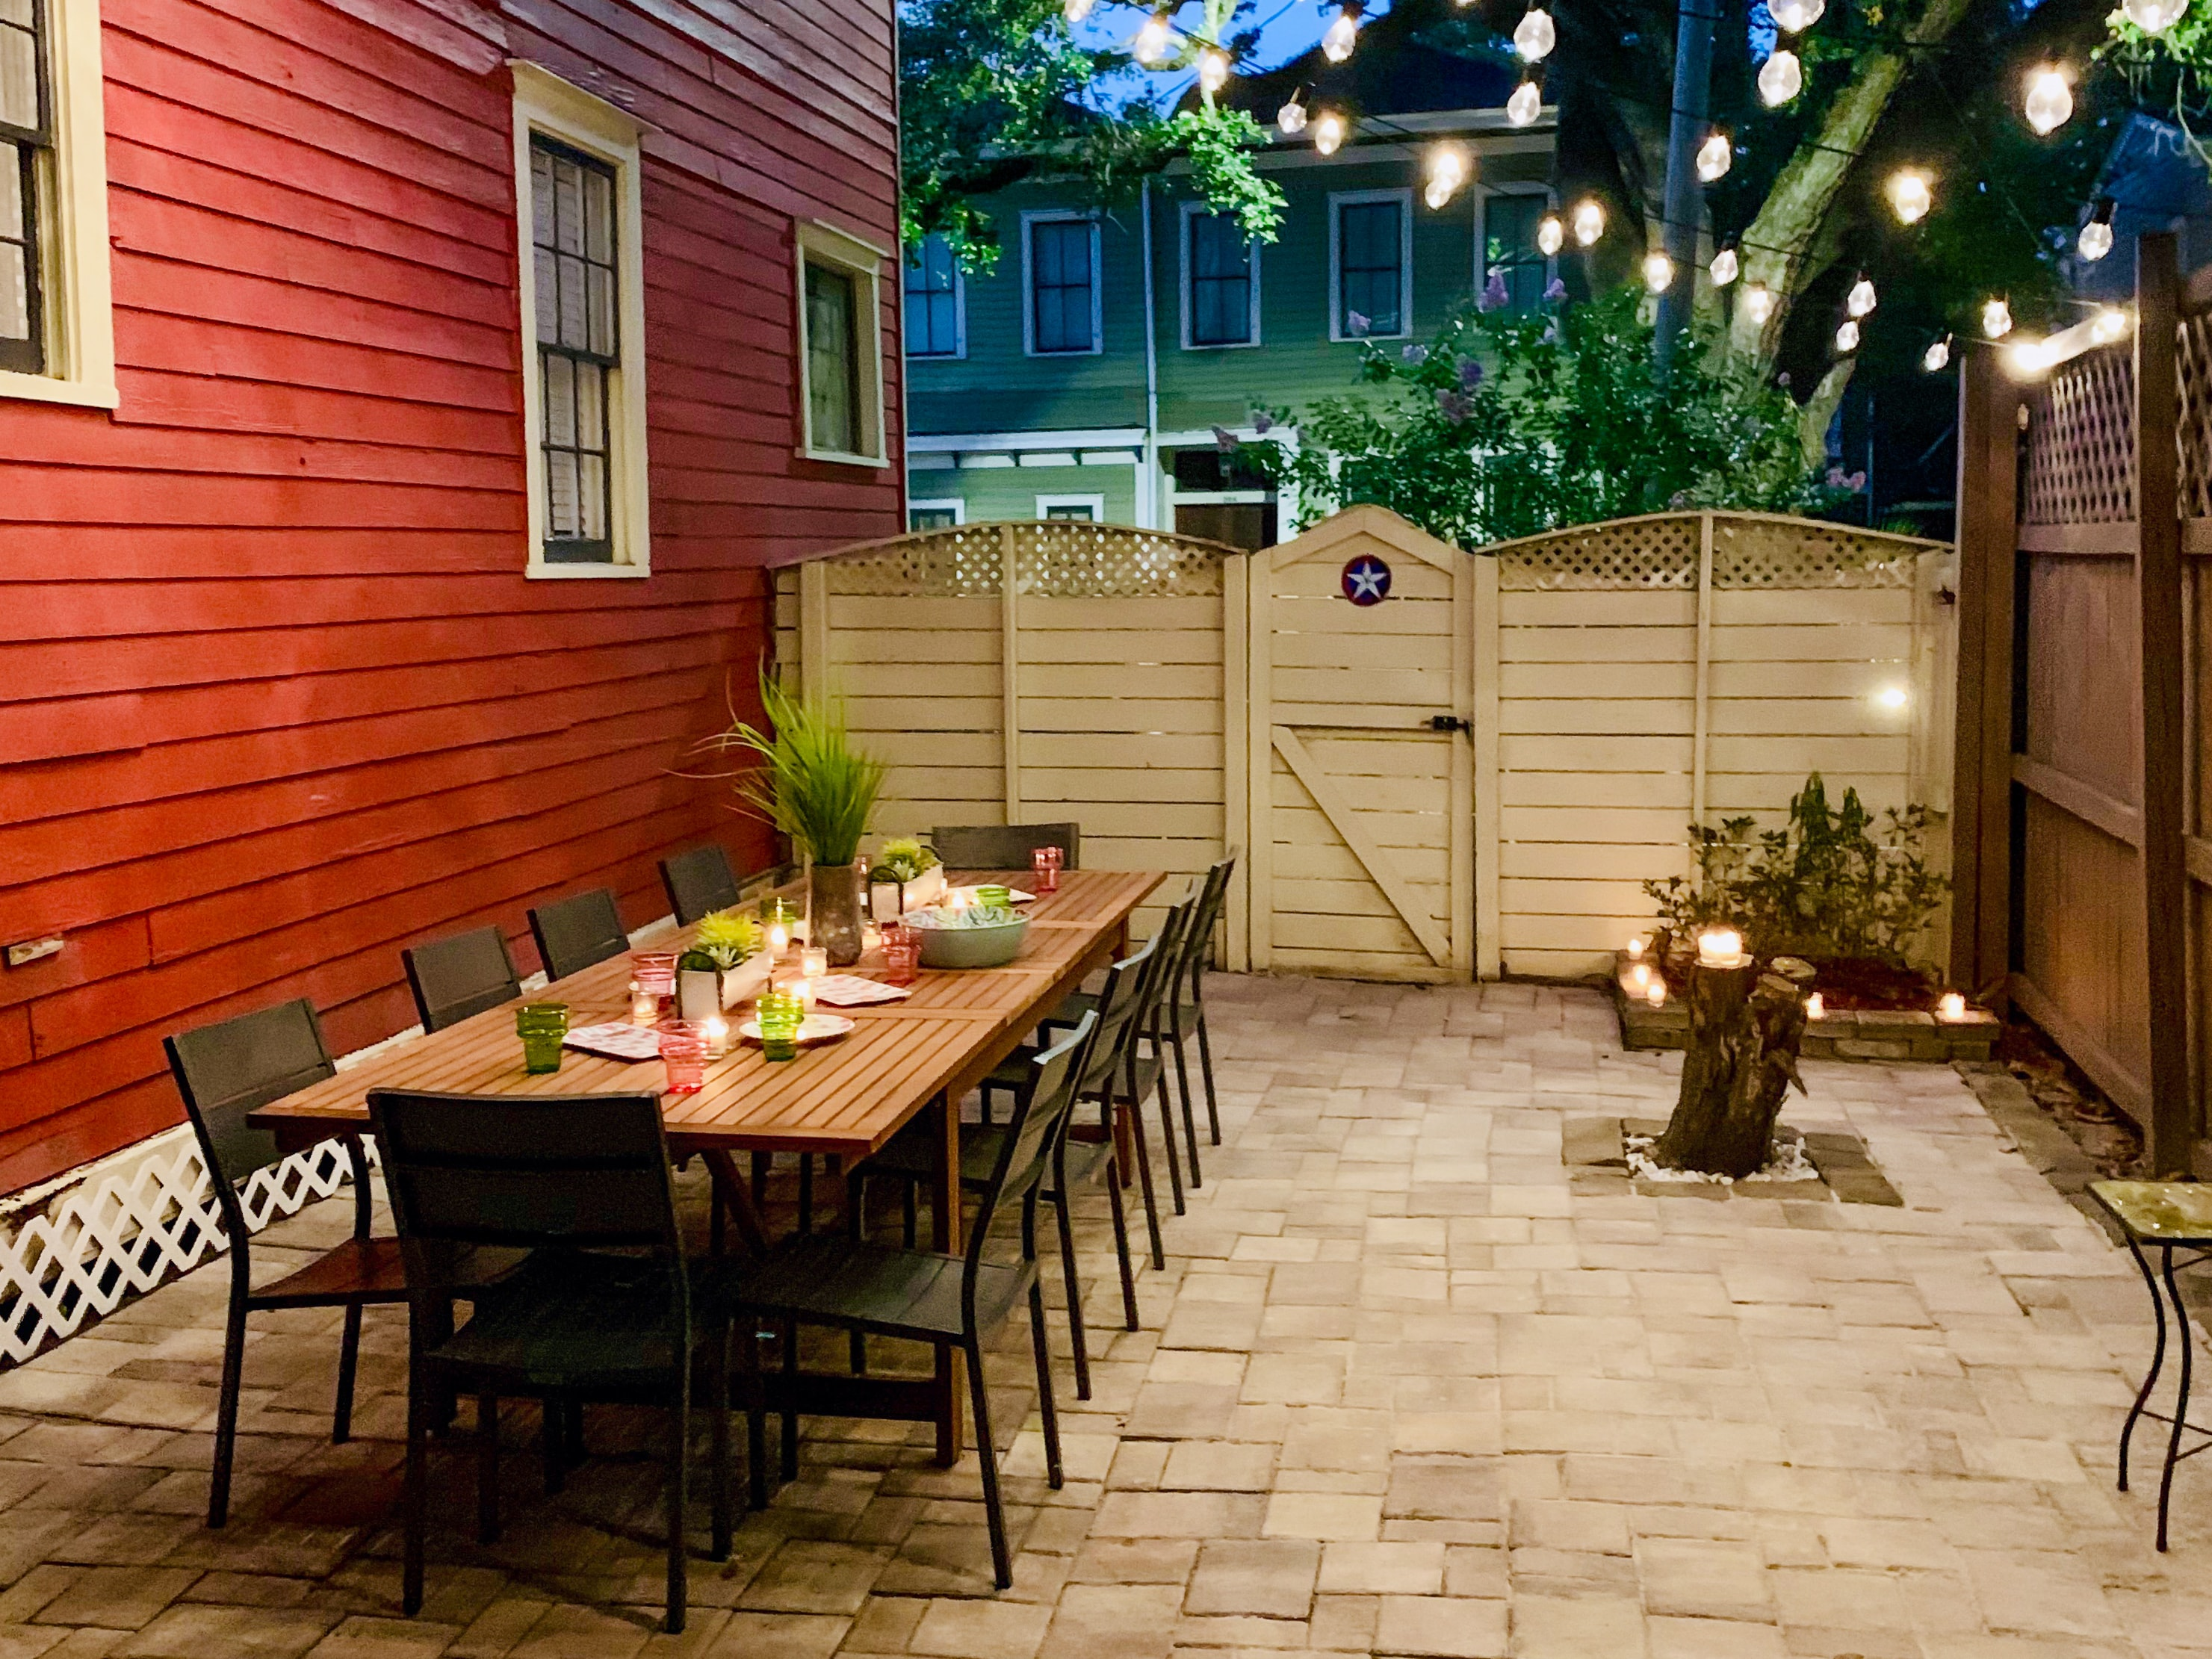 Enjoy festive meals on the enchanting private patio.